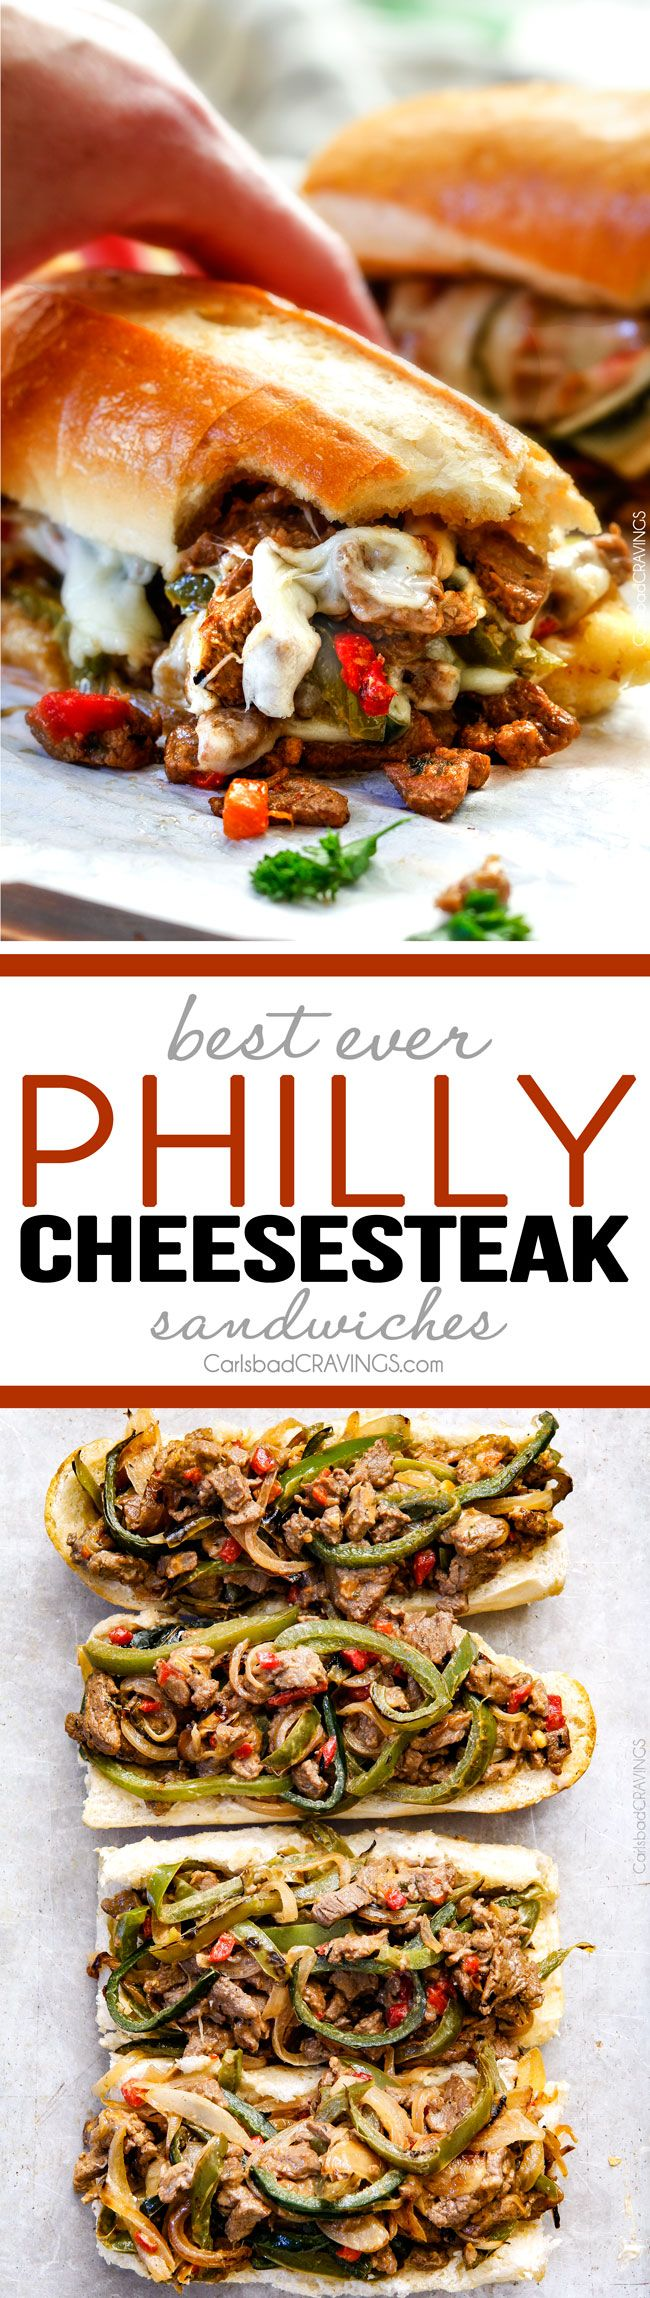 #ad these crazy tender, flavorful Philly Cheesesteak Sandwiches are the BEST EVER! The incredible marinated steak and spiced mayo set these worlds above other recipes I've tried. You seriously haven't tried Philly Cheesesteak Sandwiches until you try these - and so much easier than you think! via @carlsbadcraving: